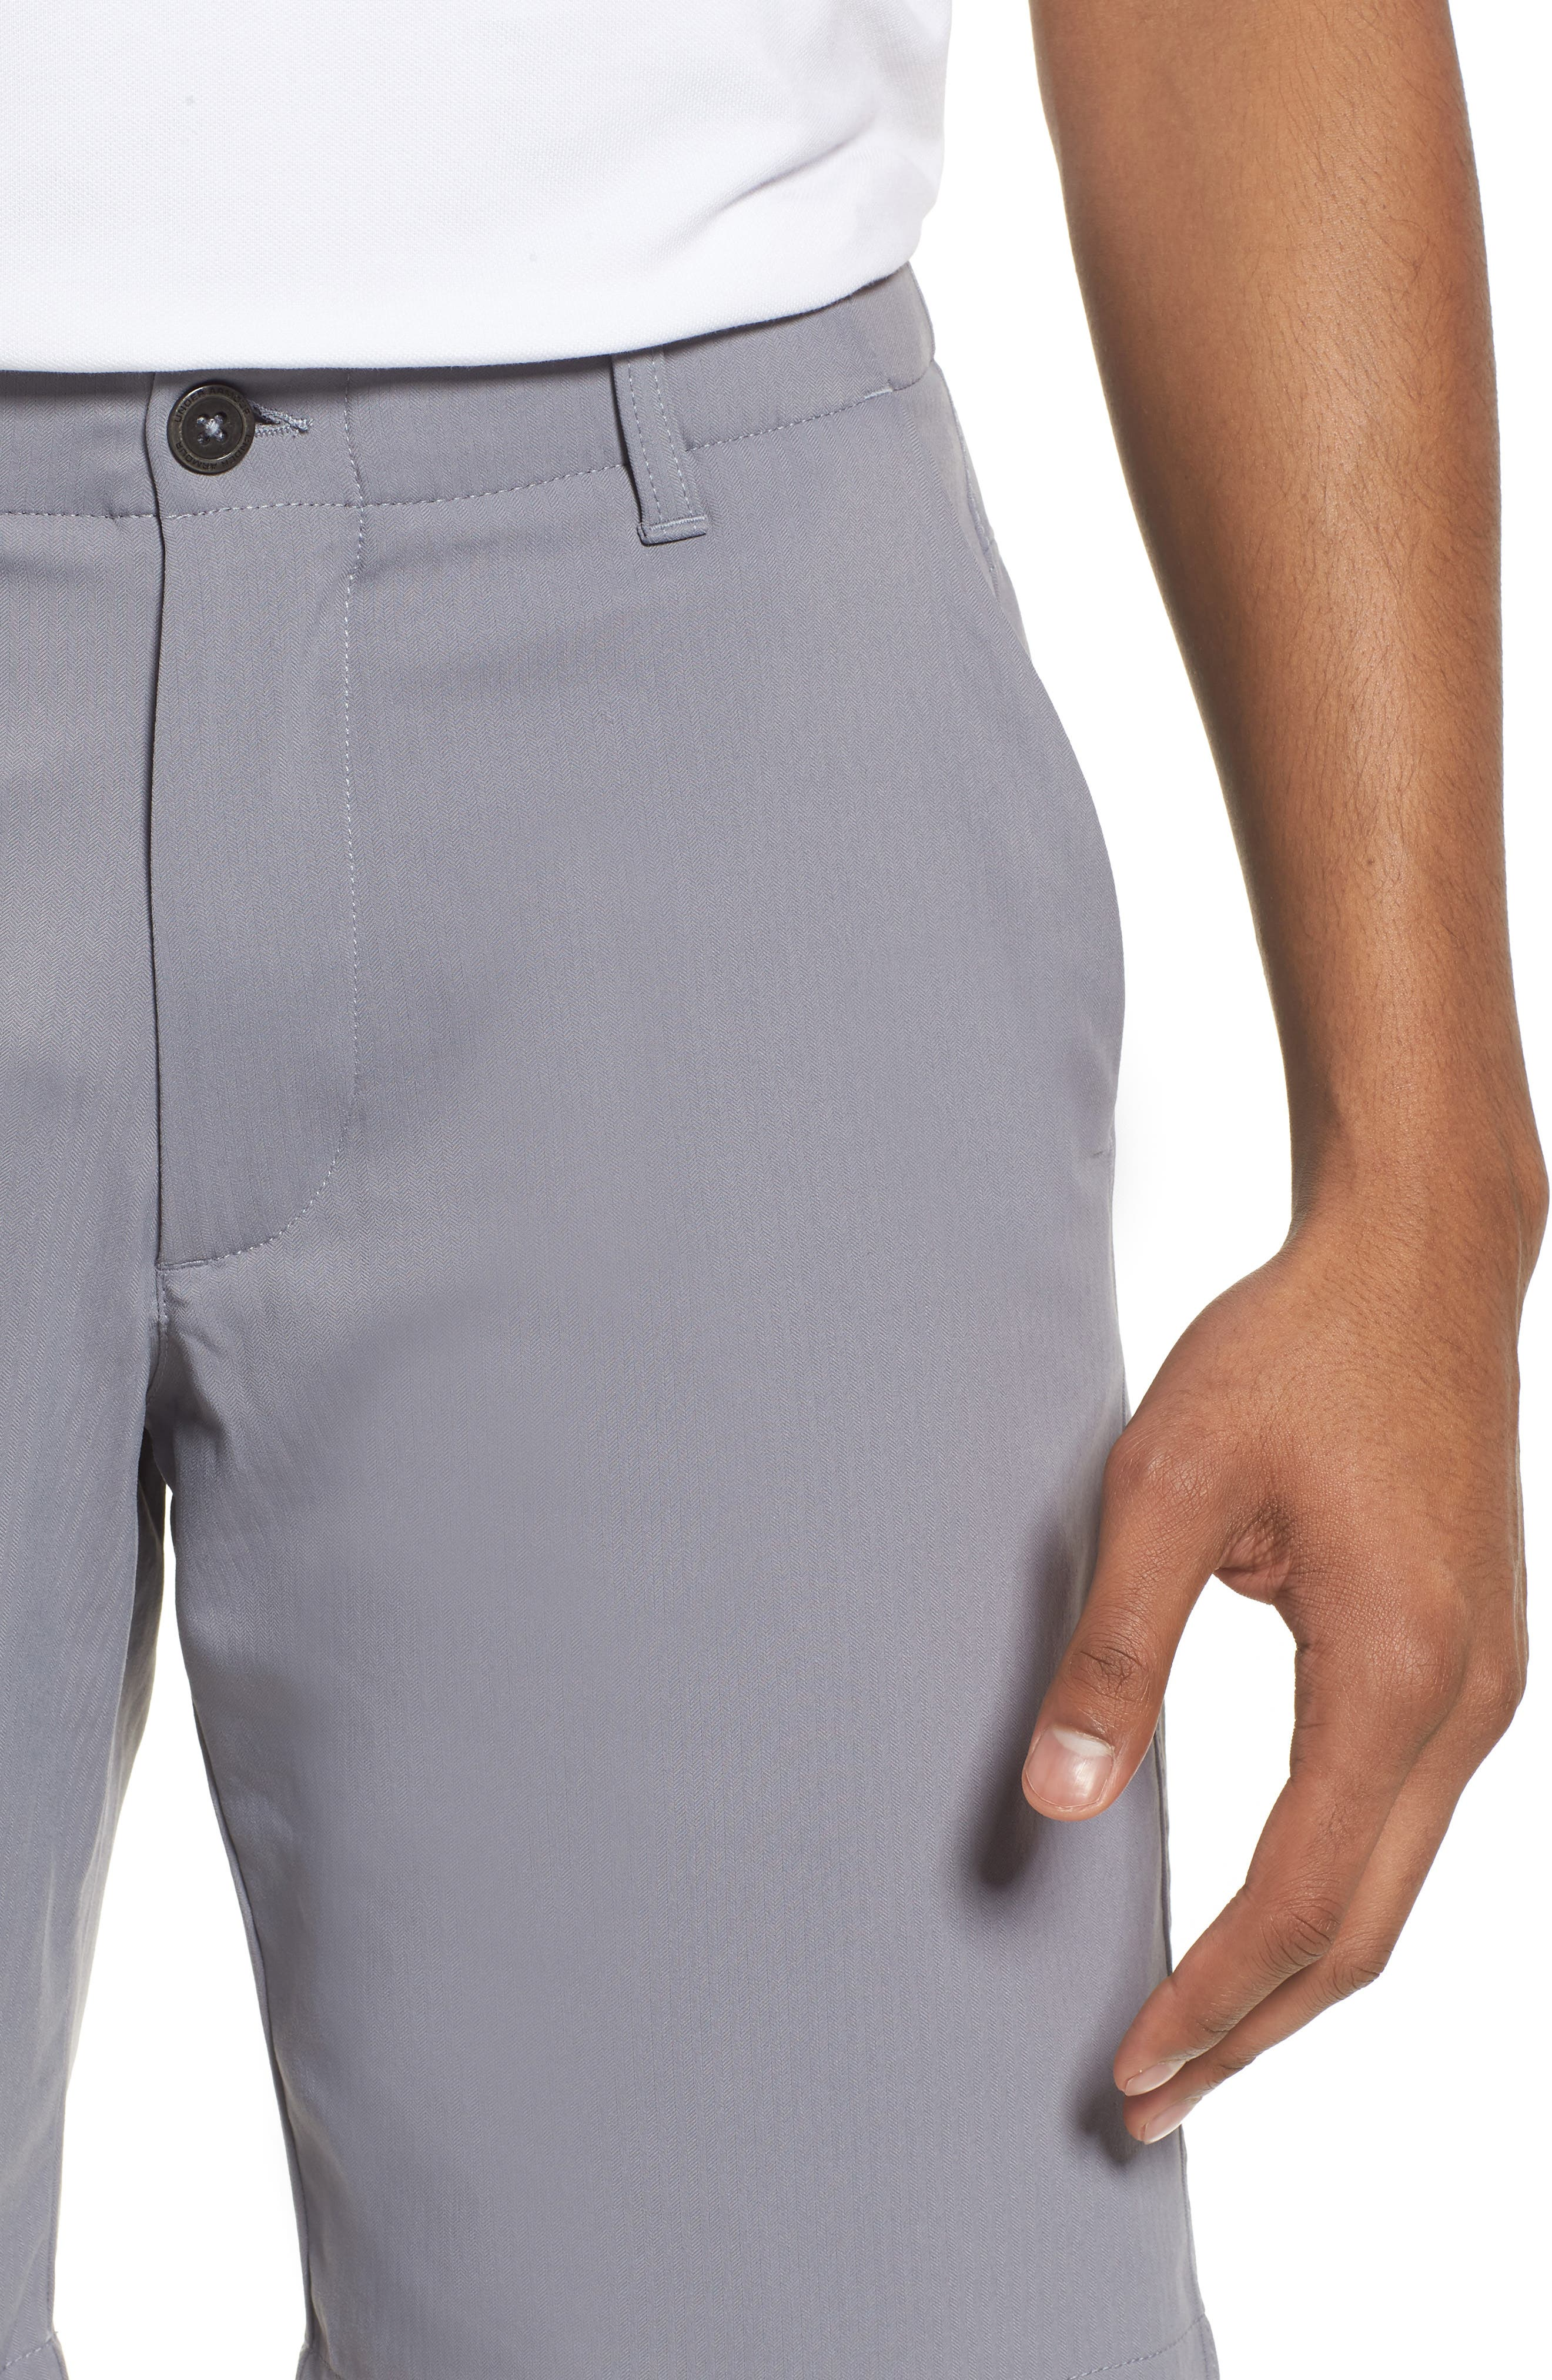 Takeover Regular Fit Golf Shorts,                             Alternate thumbnail 4, color,                             Zinc Grey